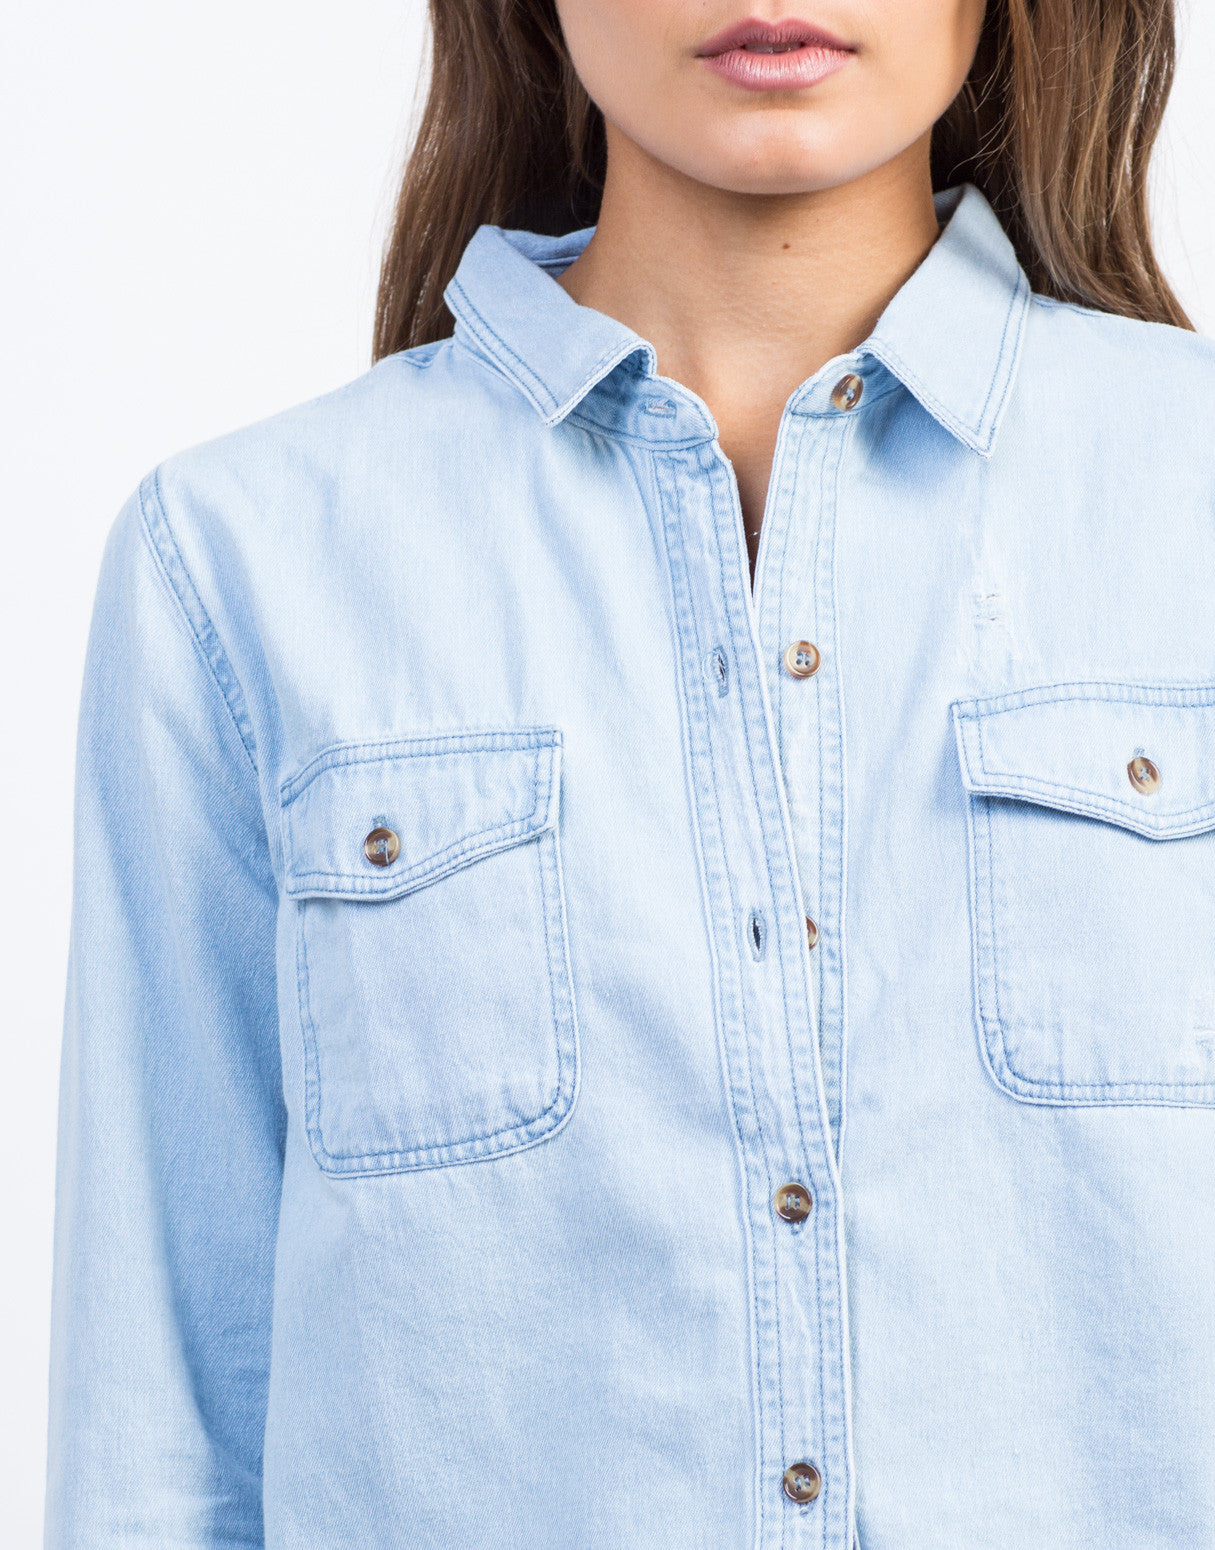 Detail of Distressed Denim Shirt